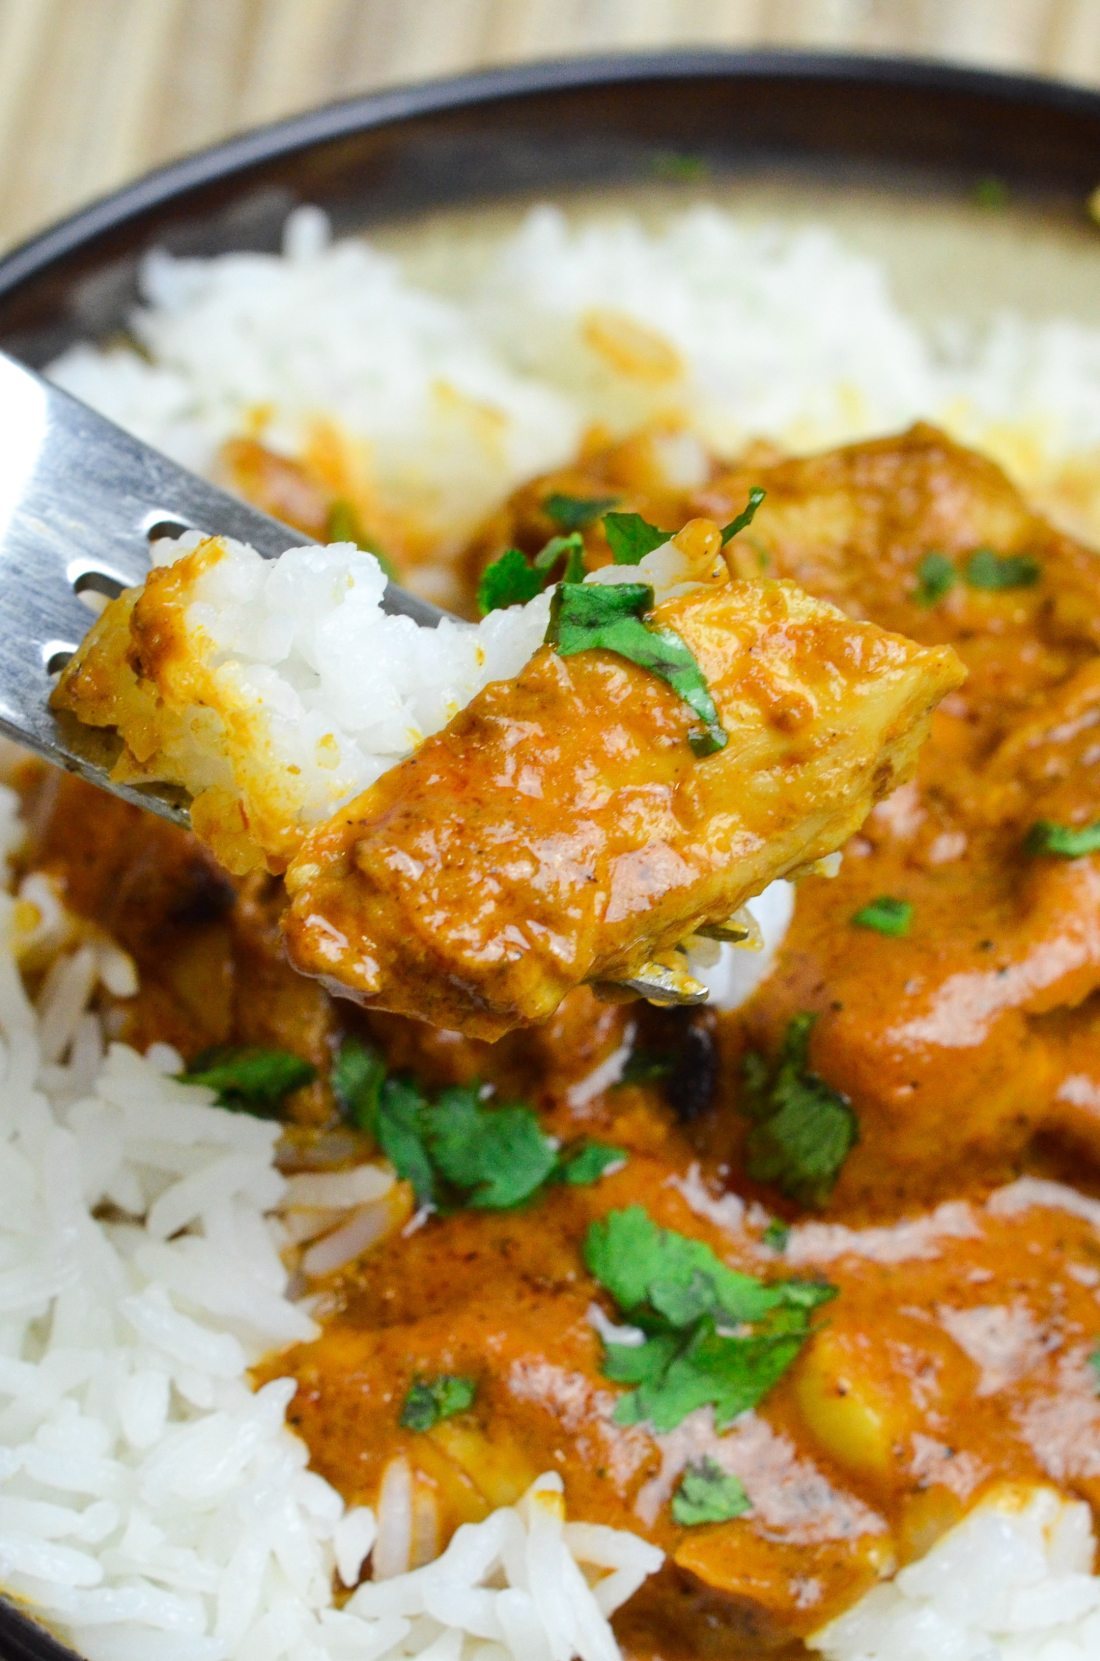 If you are looking for a deliciously easy to make Instant Pot Indian Butter Chicken try this recipe for you next family dinner. Serve it for your next family dinner with a side of Naan bread.